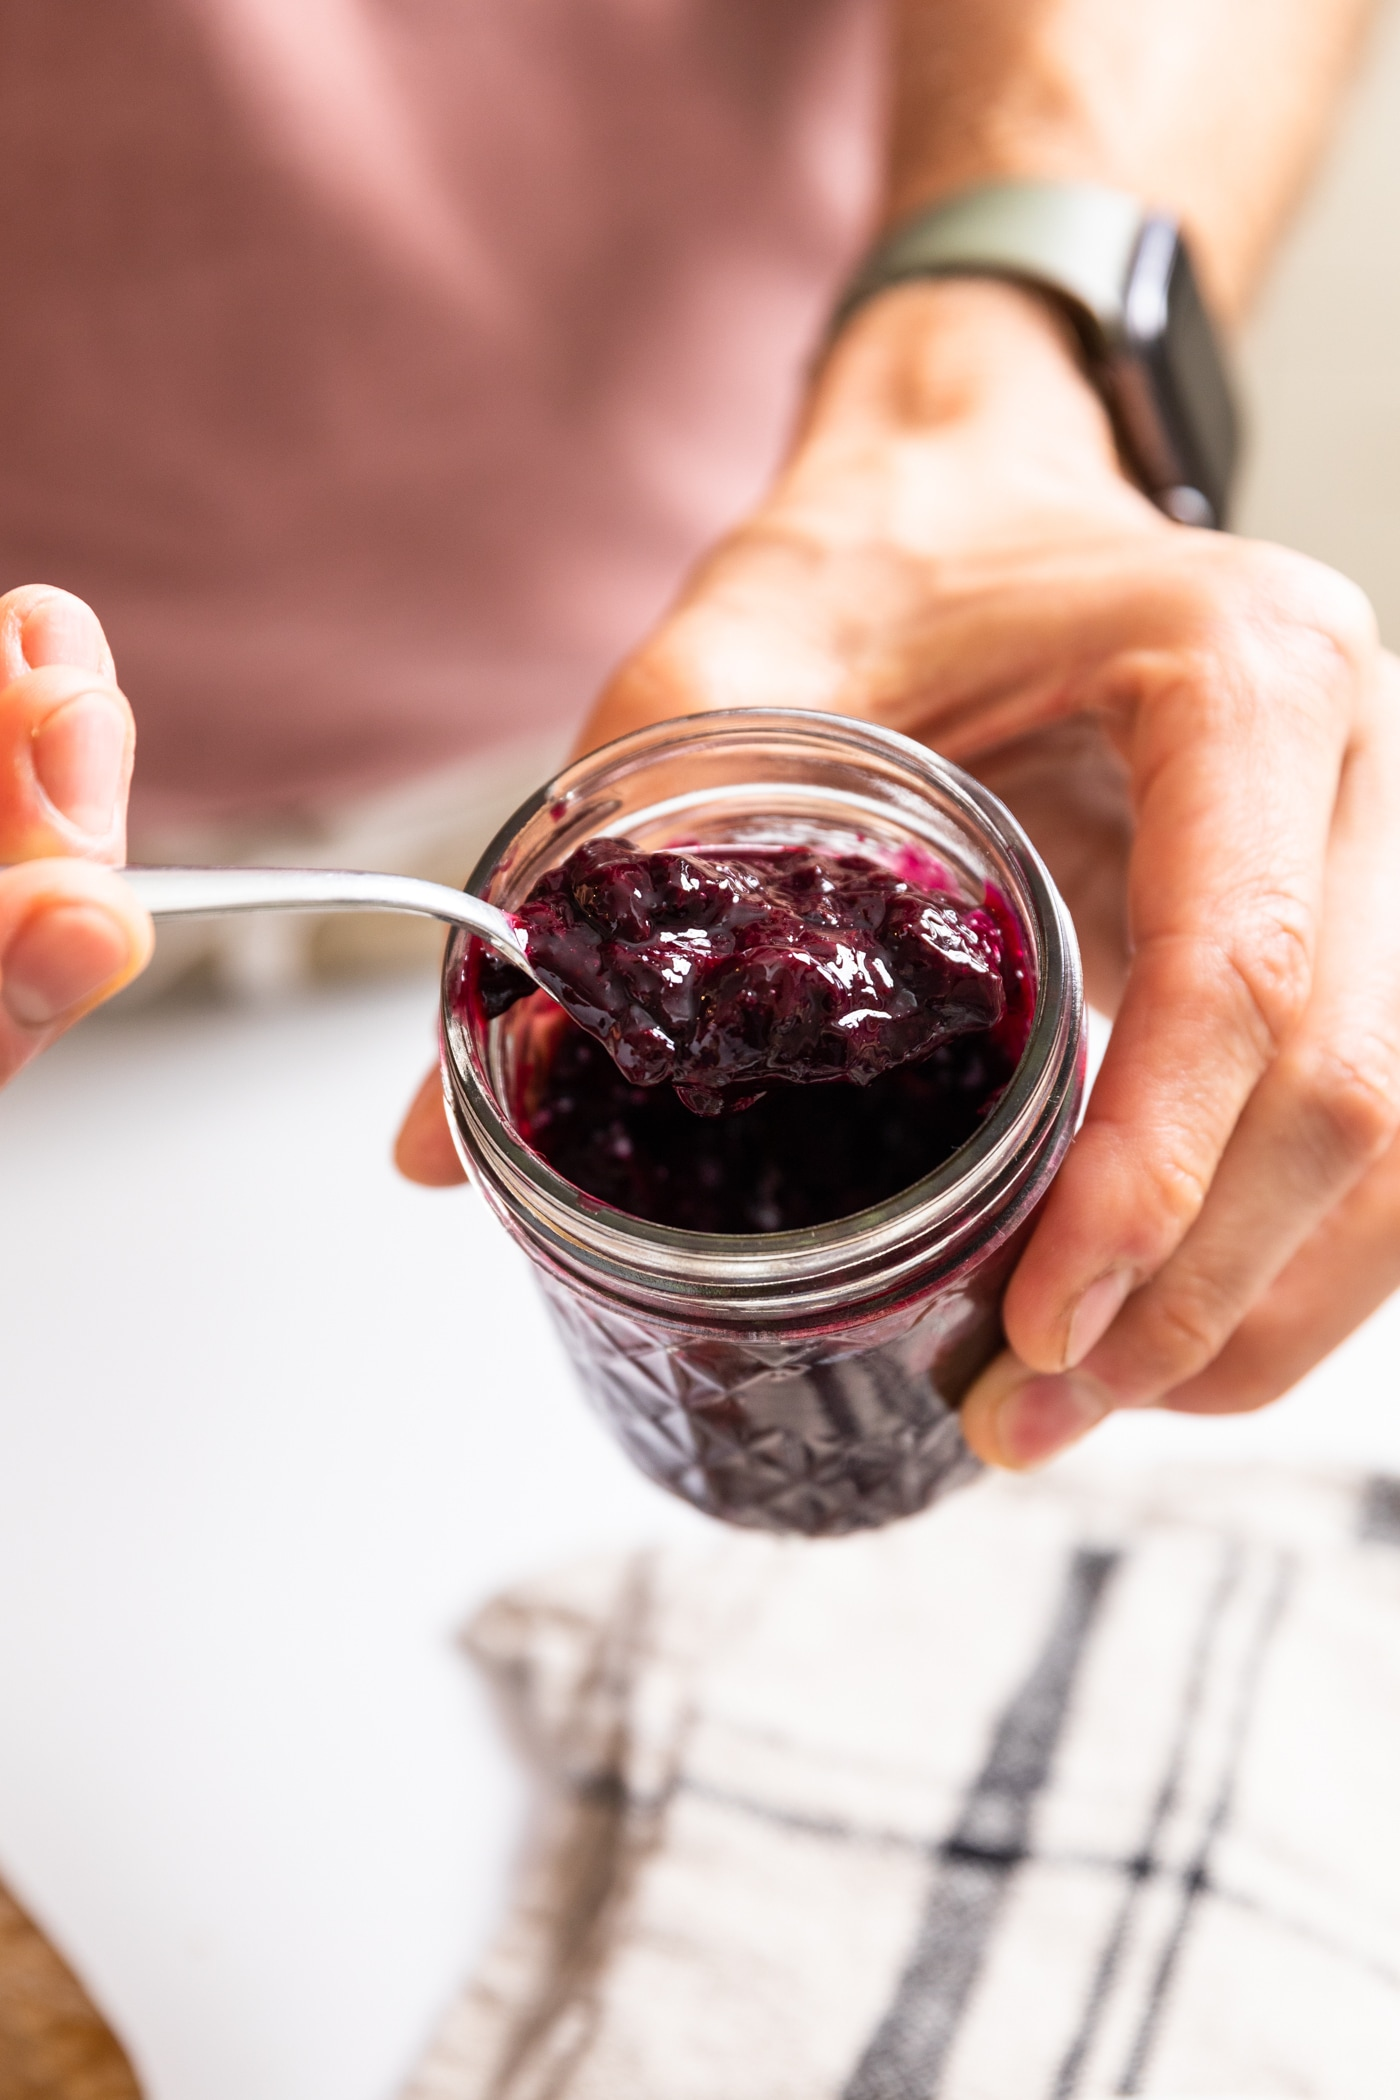 Hand holding glass jar filled with dark purple blueberry jam with other hand holding spoon scooping out some of the jam